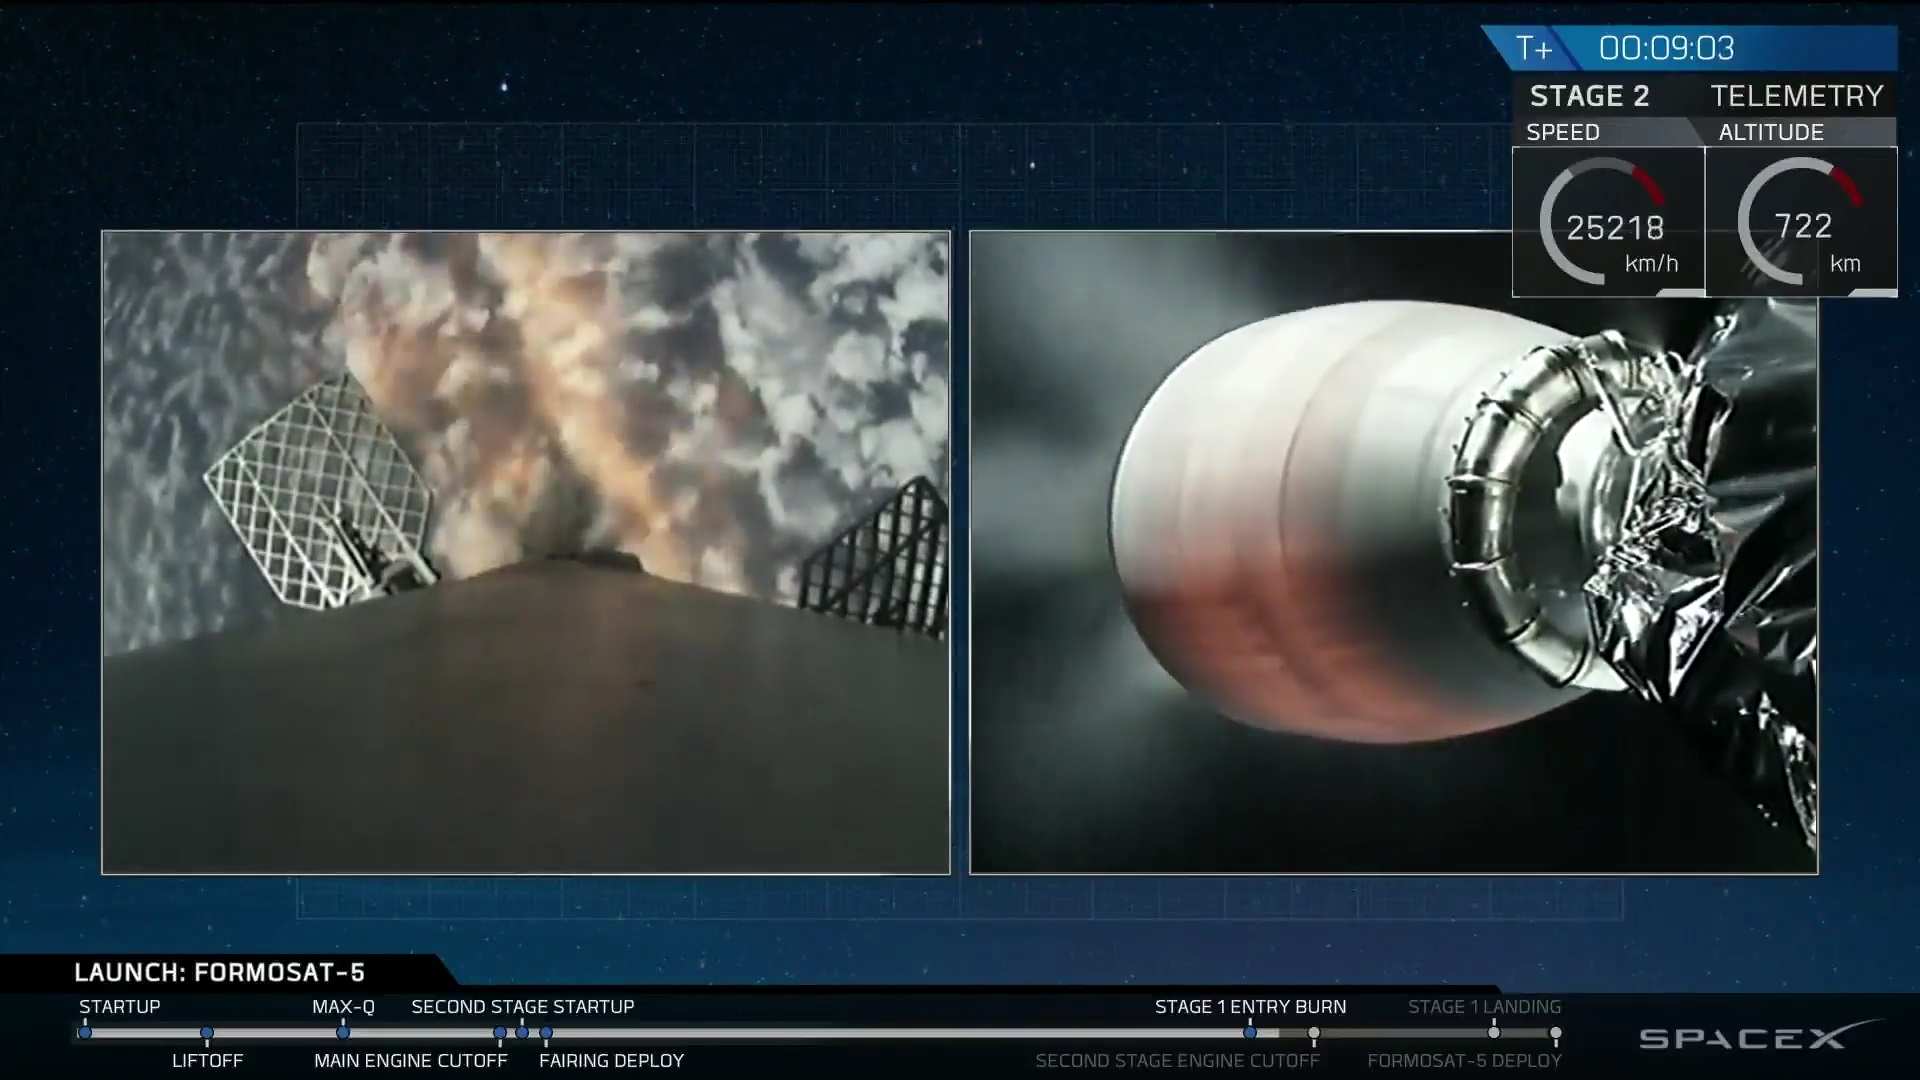 stage 1 entry burn photo spacex webcast